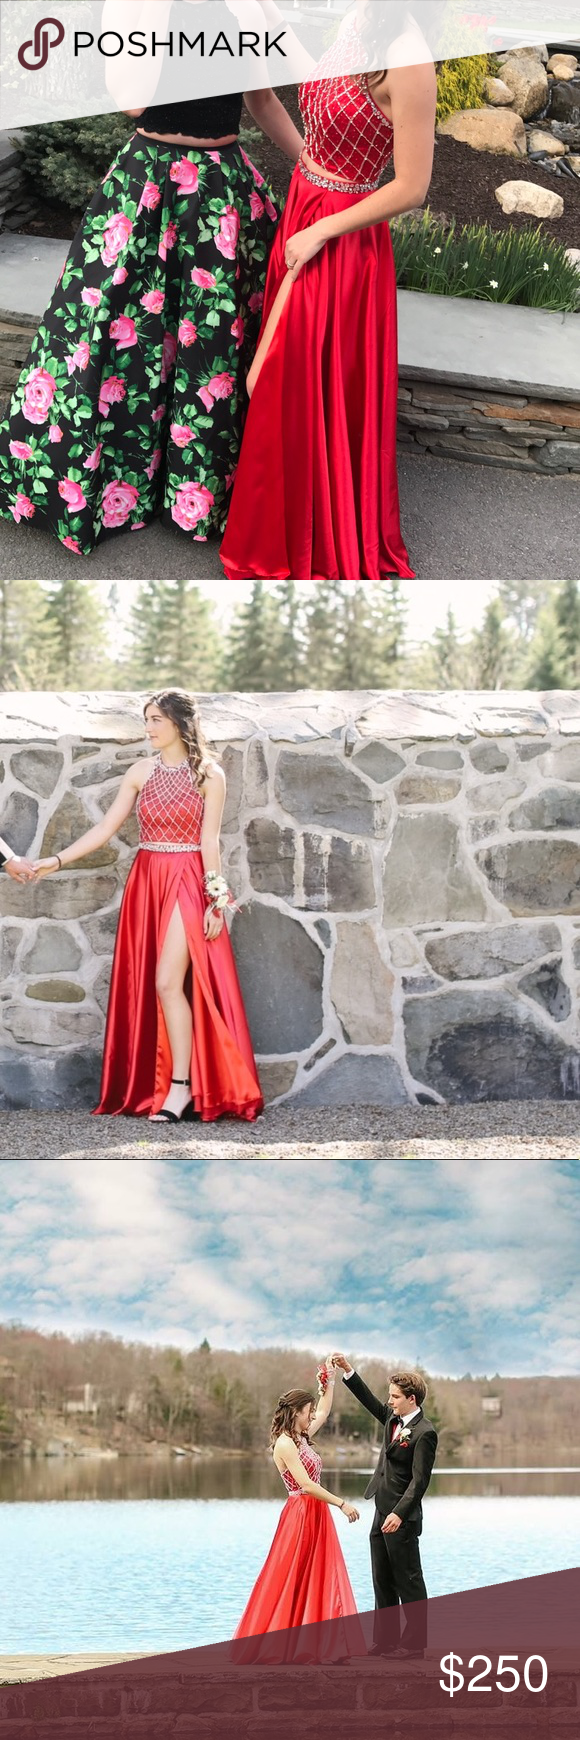 Red satin two piece prom dress red satin satin and prom